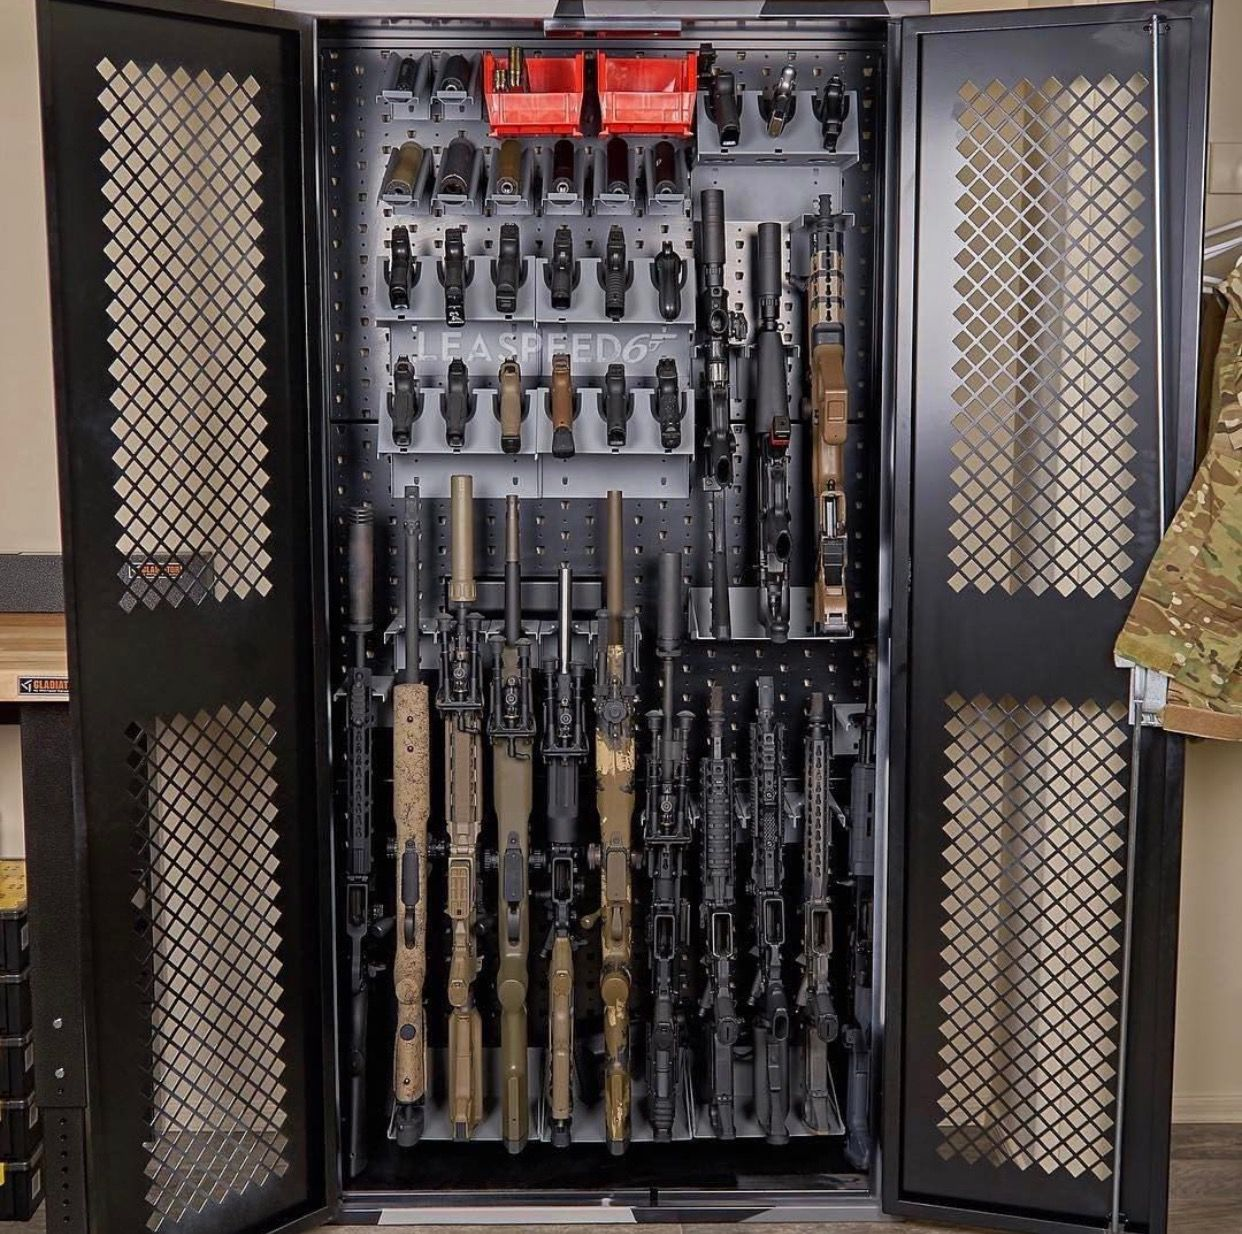 Pin On Gun Safes Cases Amp Storage